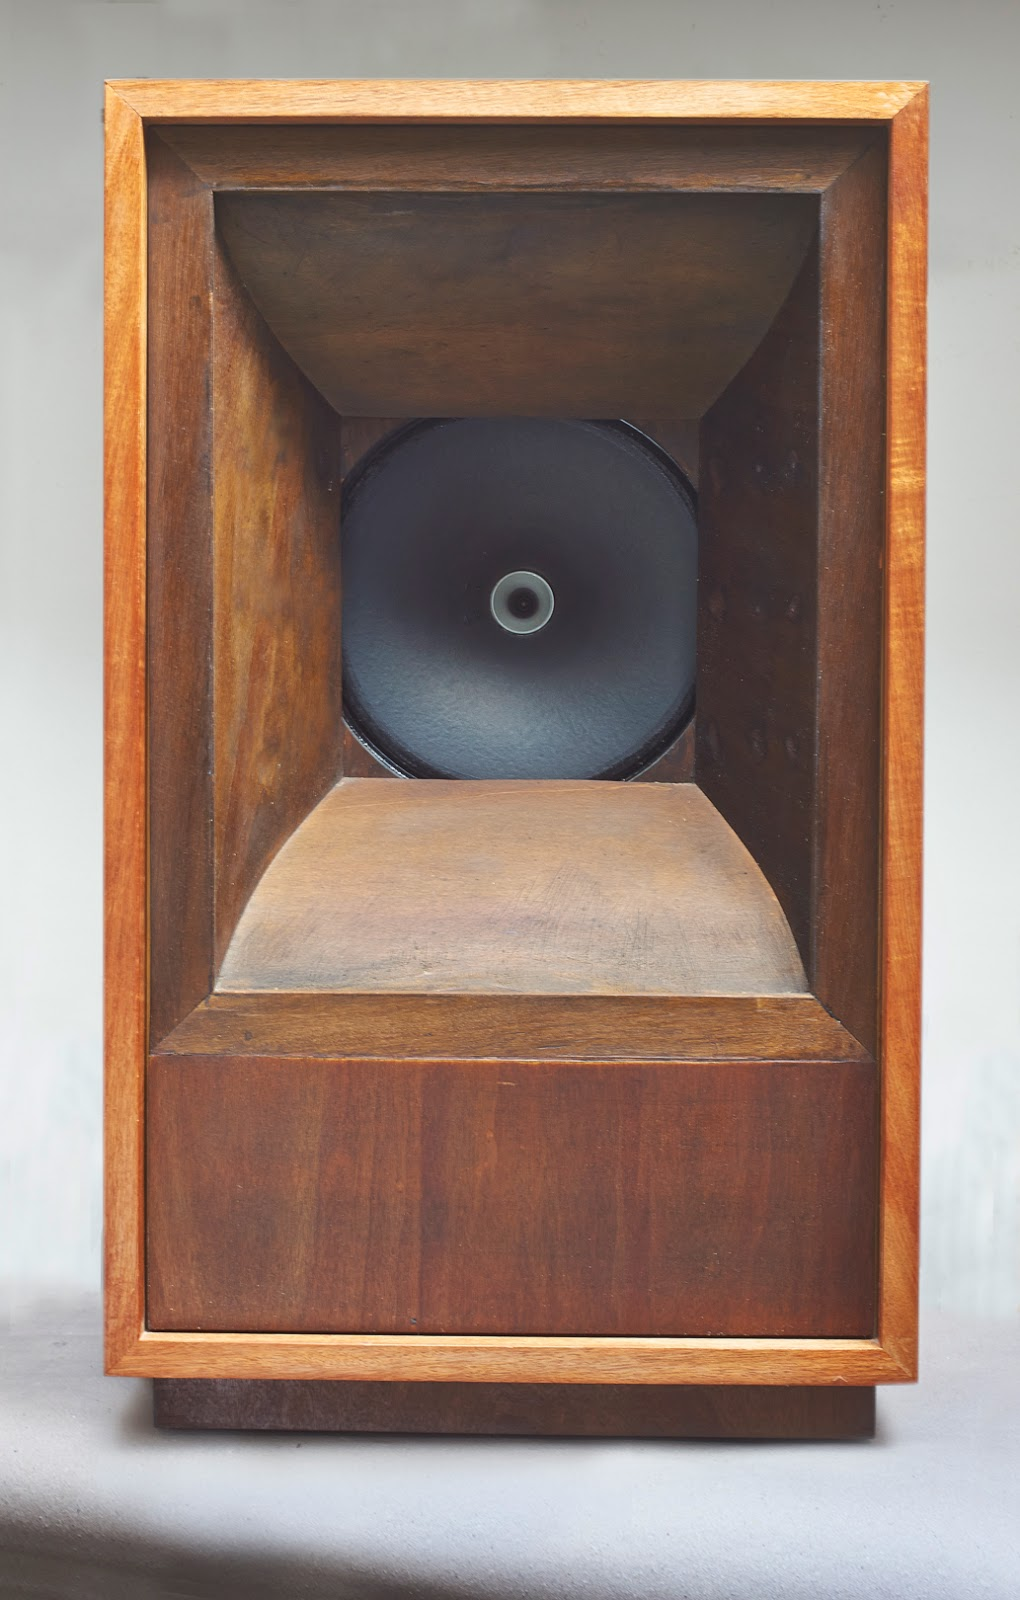 truefi: The Tannoy 15'' Enclosure for the Enthusiast ...